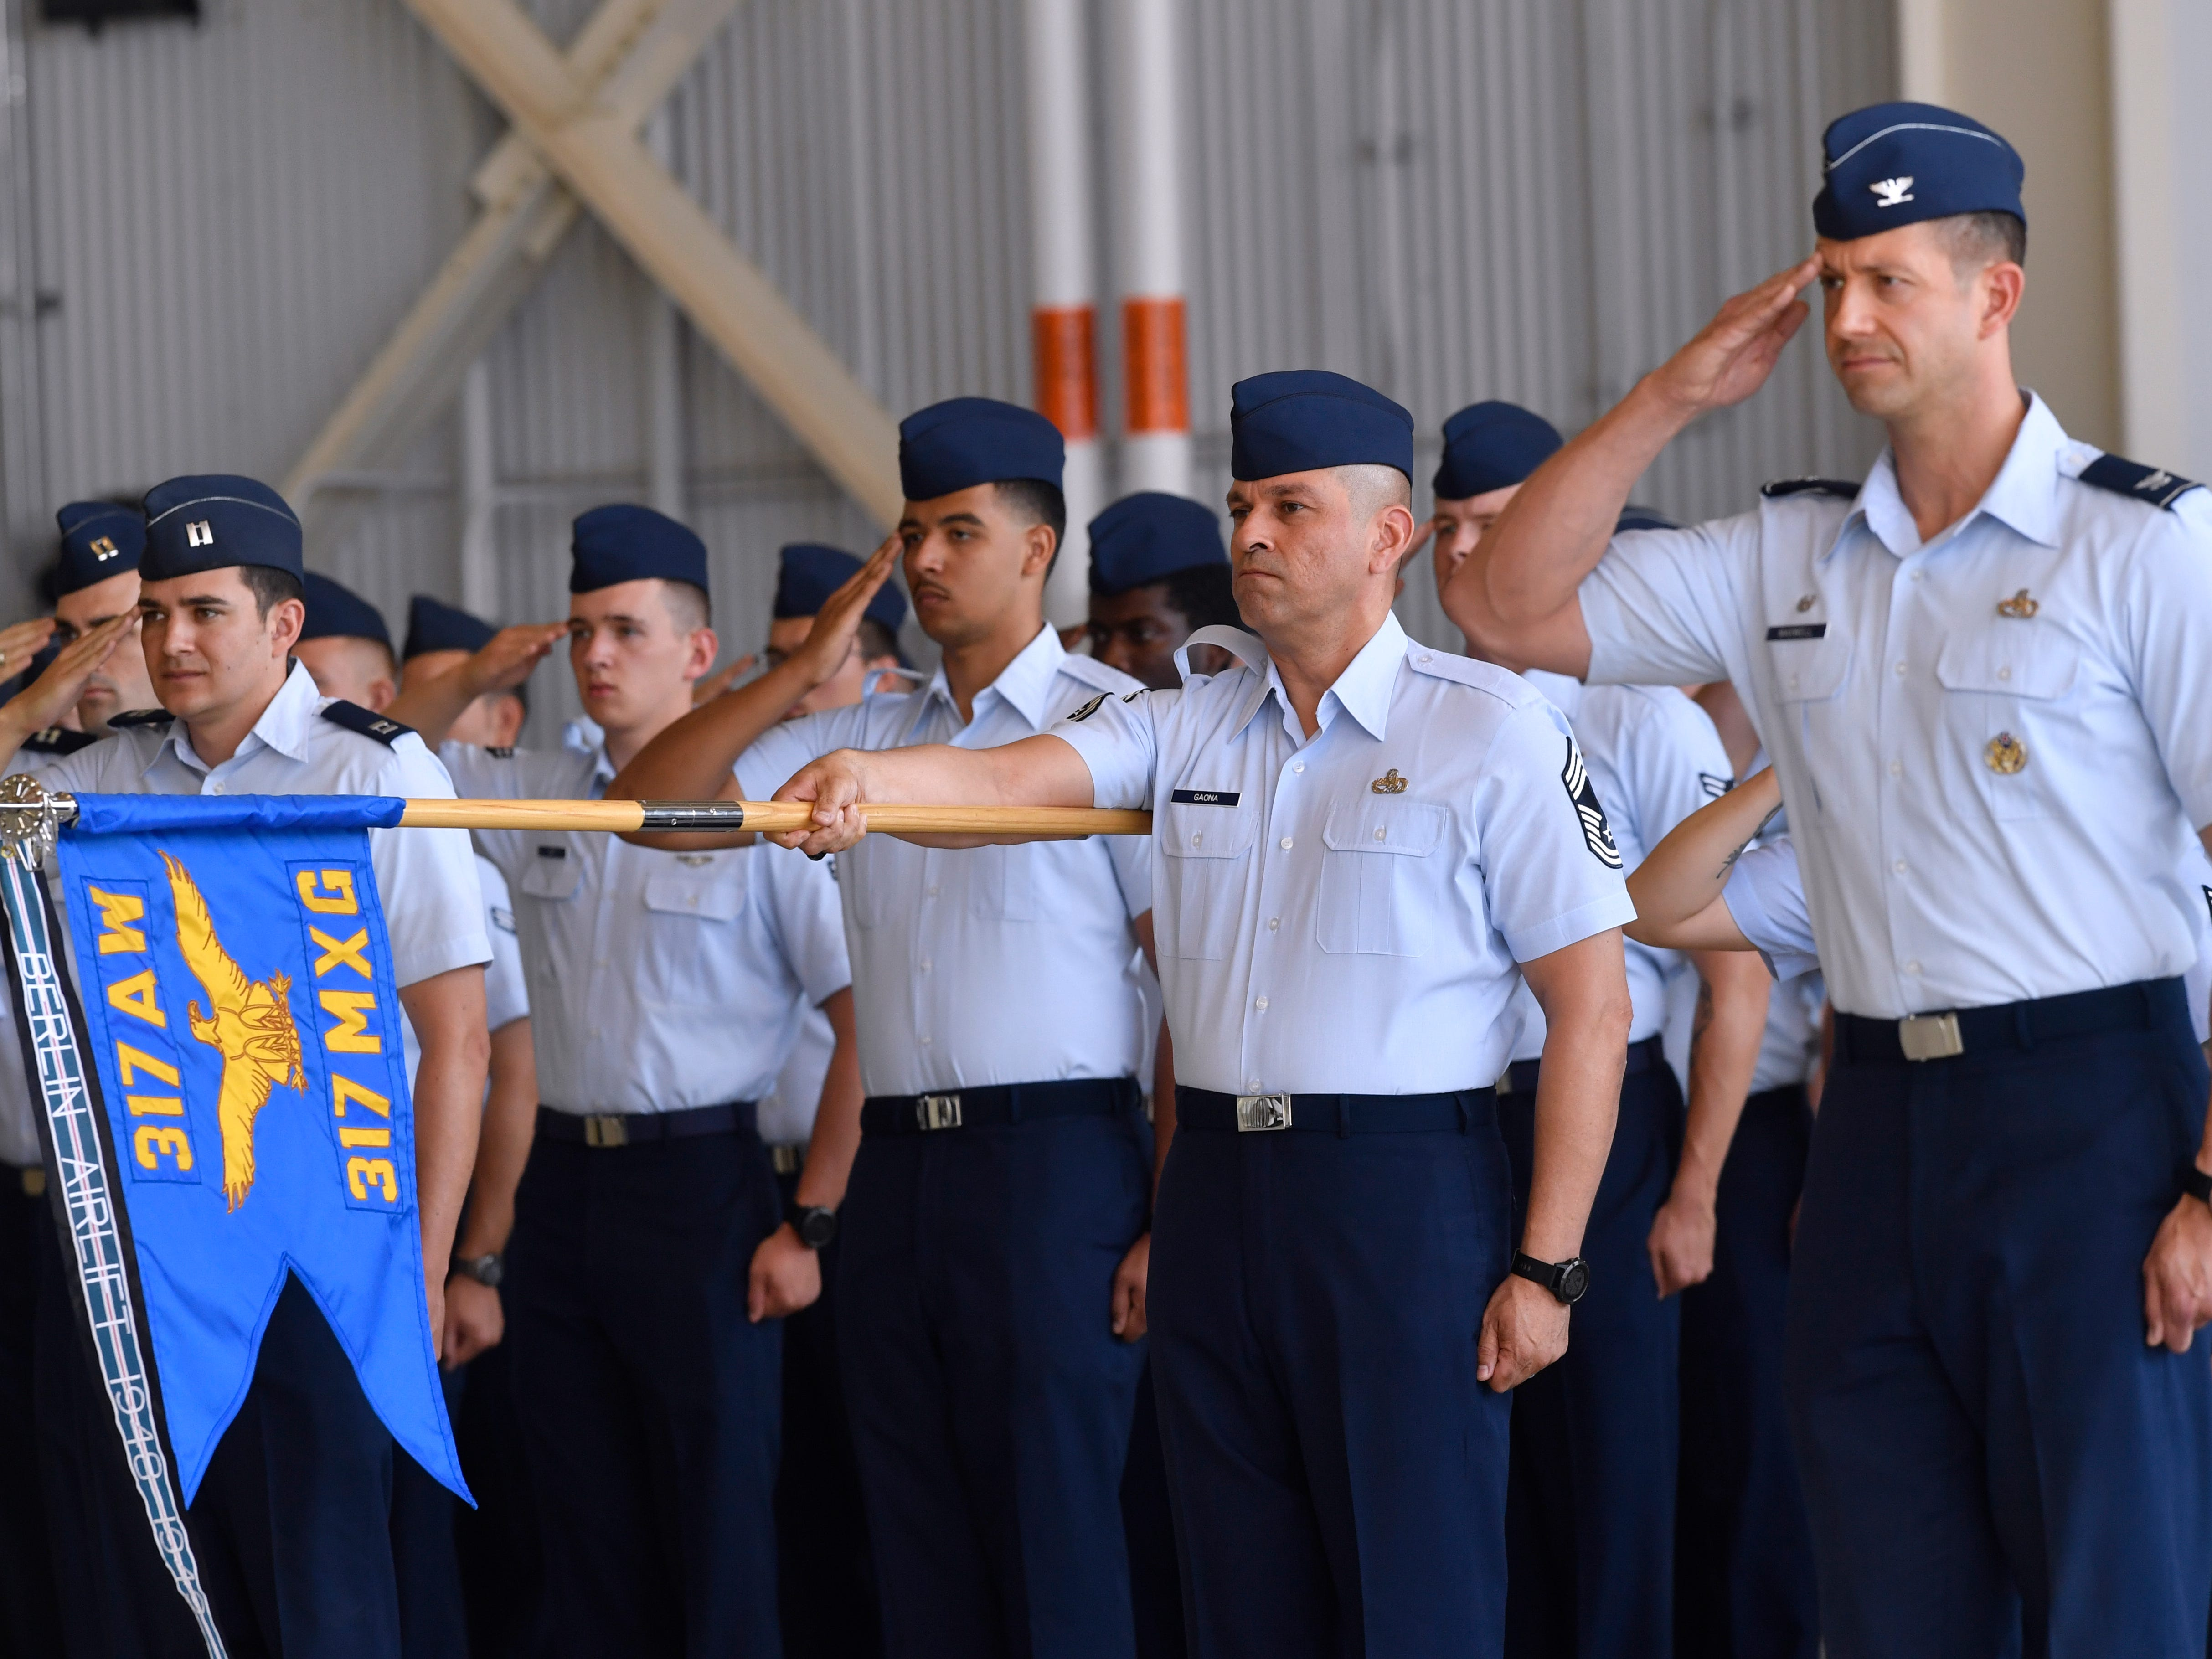 Members of the 317th Airlift Wing salute in formation during the unit's assumption of command ceremony Friday August 3, 2018 at Dyess Air Force Base. Col. Jeffrey Menasco was given command of the wing by Major Gen. Sam Barrett, Commander of the 18th Air Force.